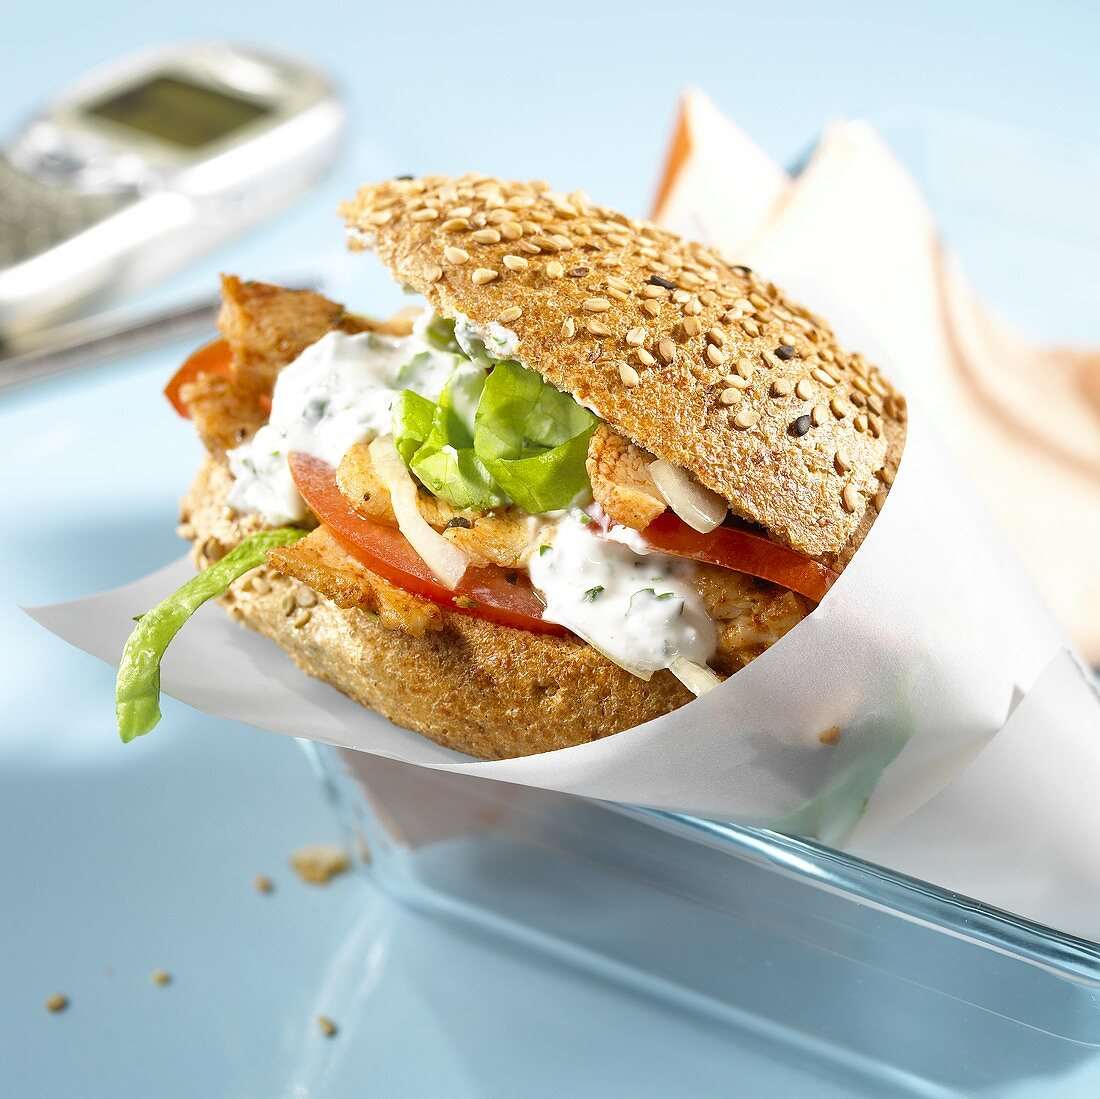 Wholemeal roll with gyros for lunch